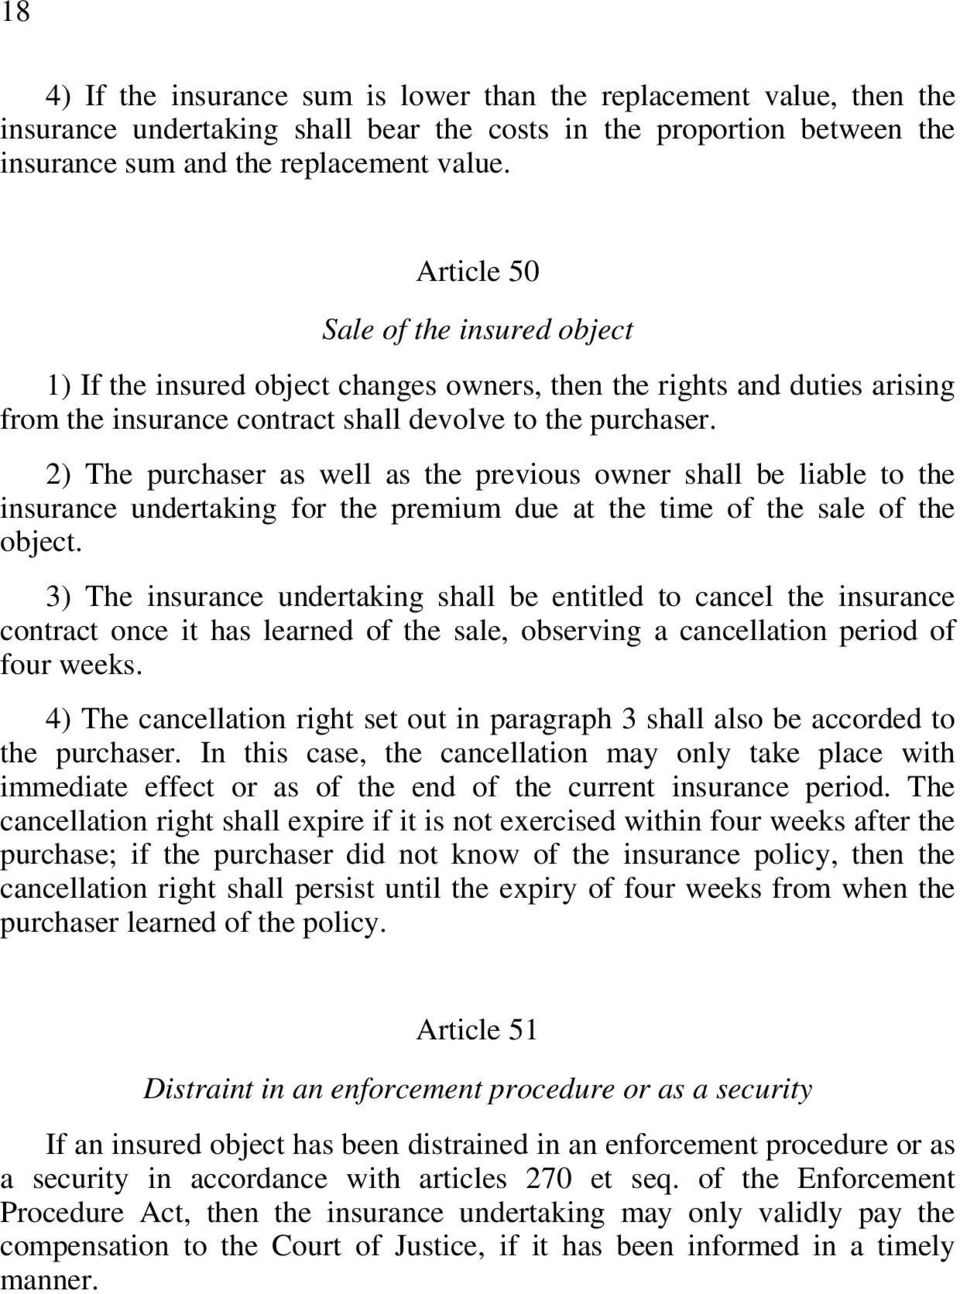 2) The purchaser as well as the previous owner shall be liable to the insurance undertaking for the premium due at the time of the sale of the object.